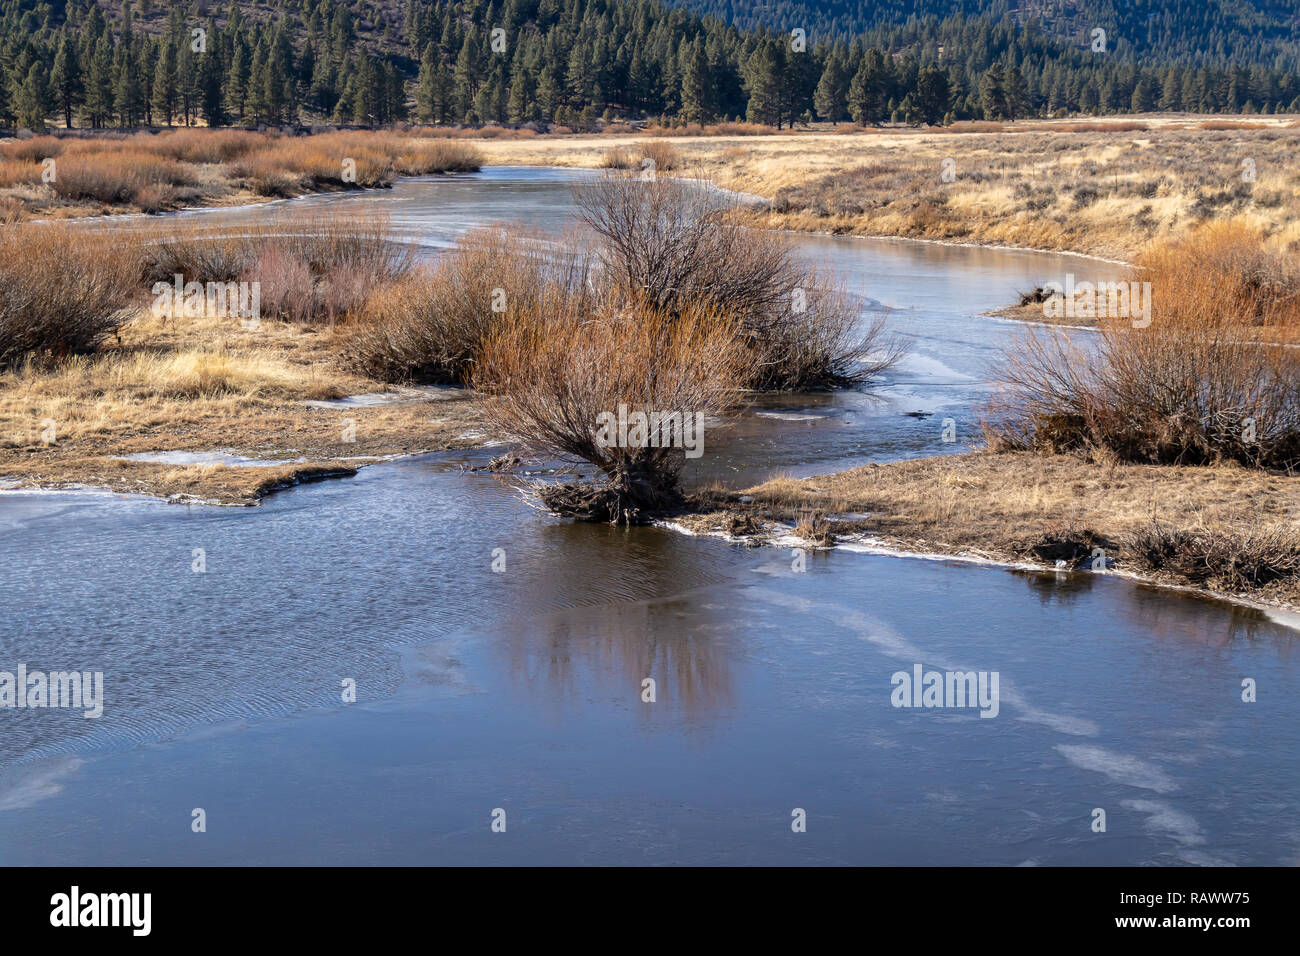 Feather River winding throng a field towards a mountain in Northern California. - Stock Image